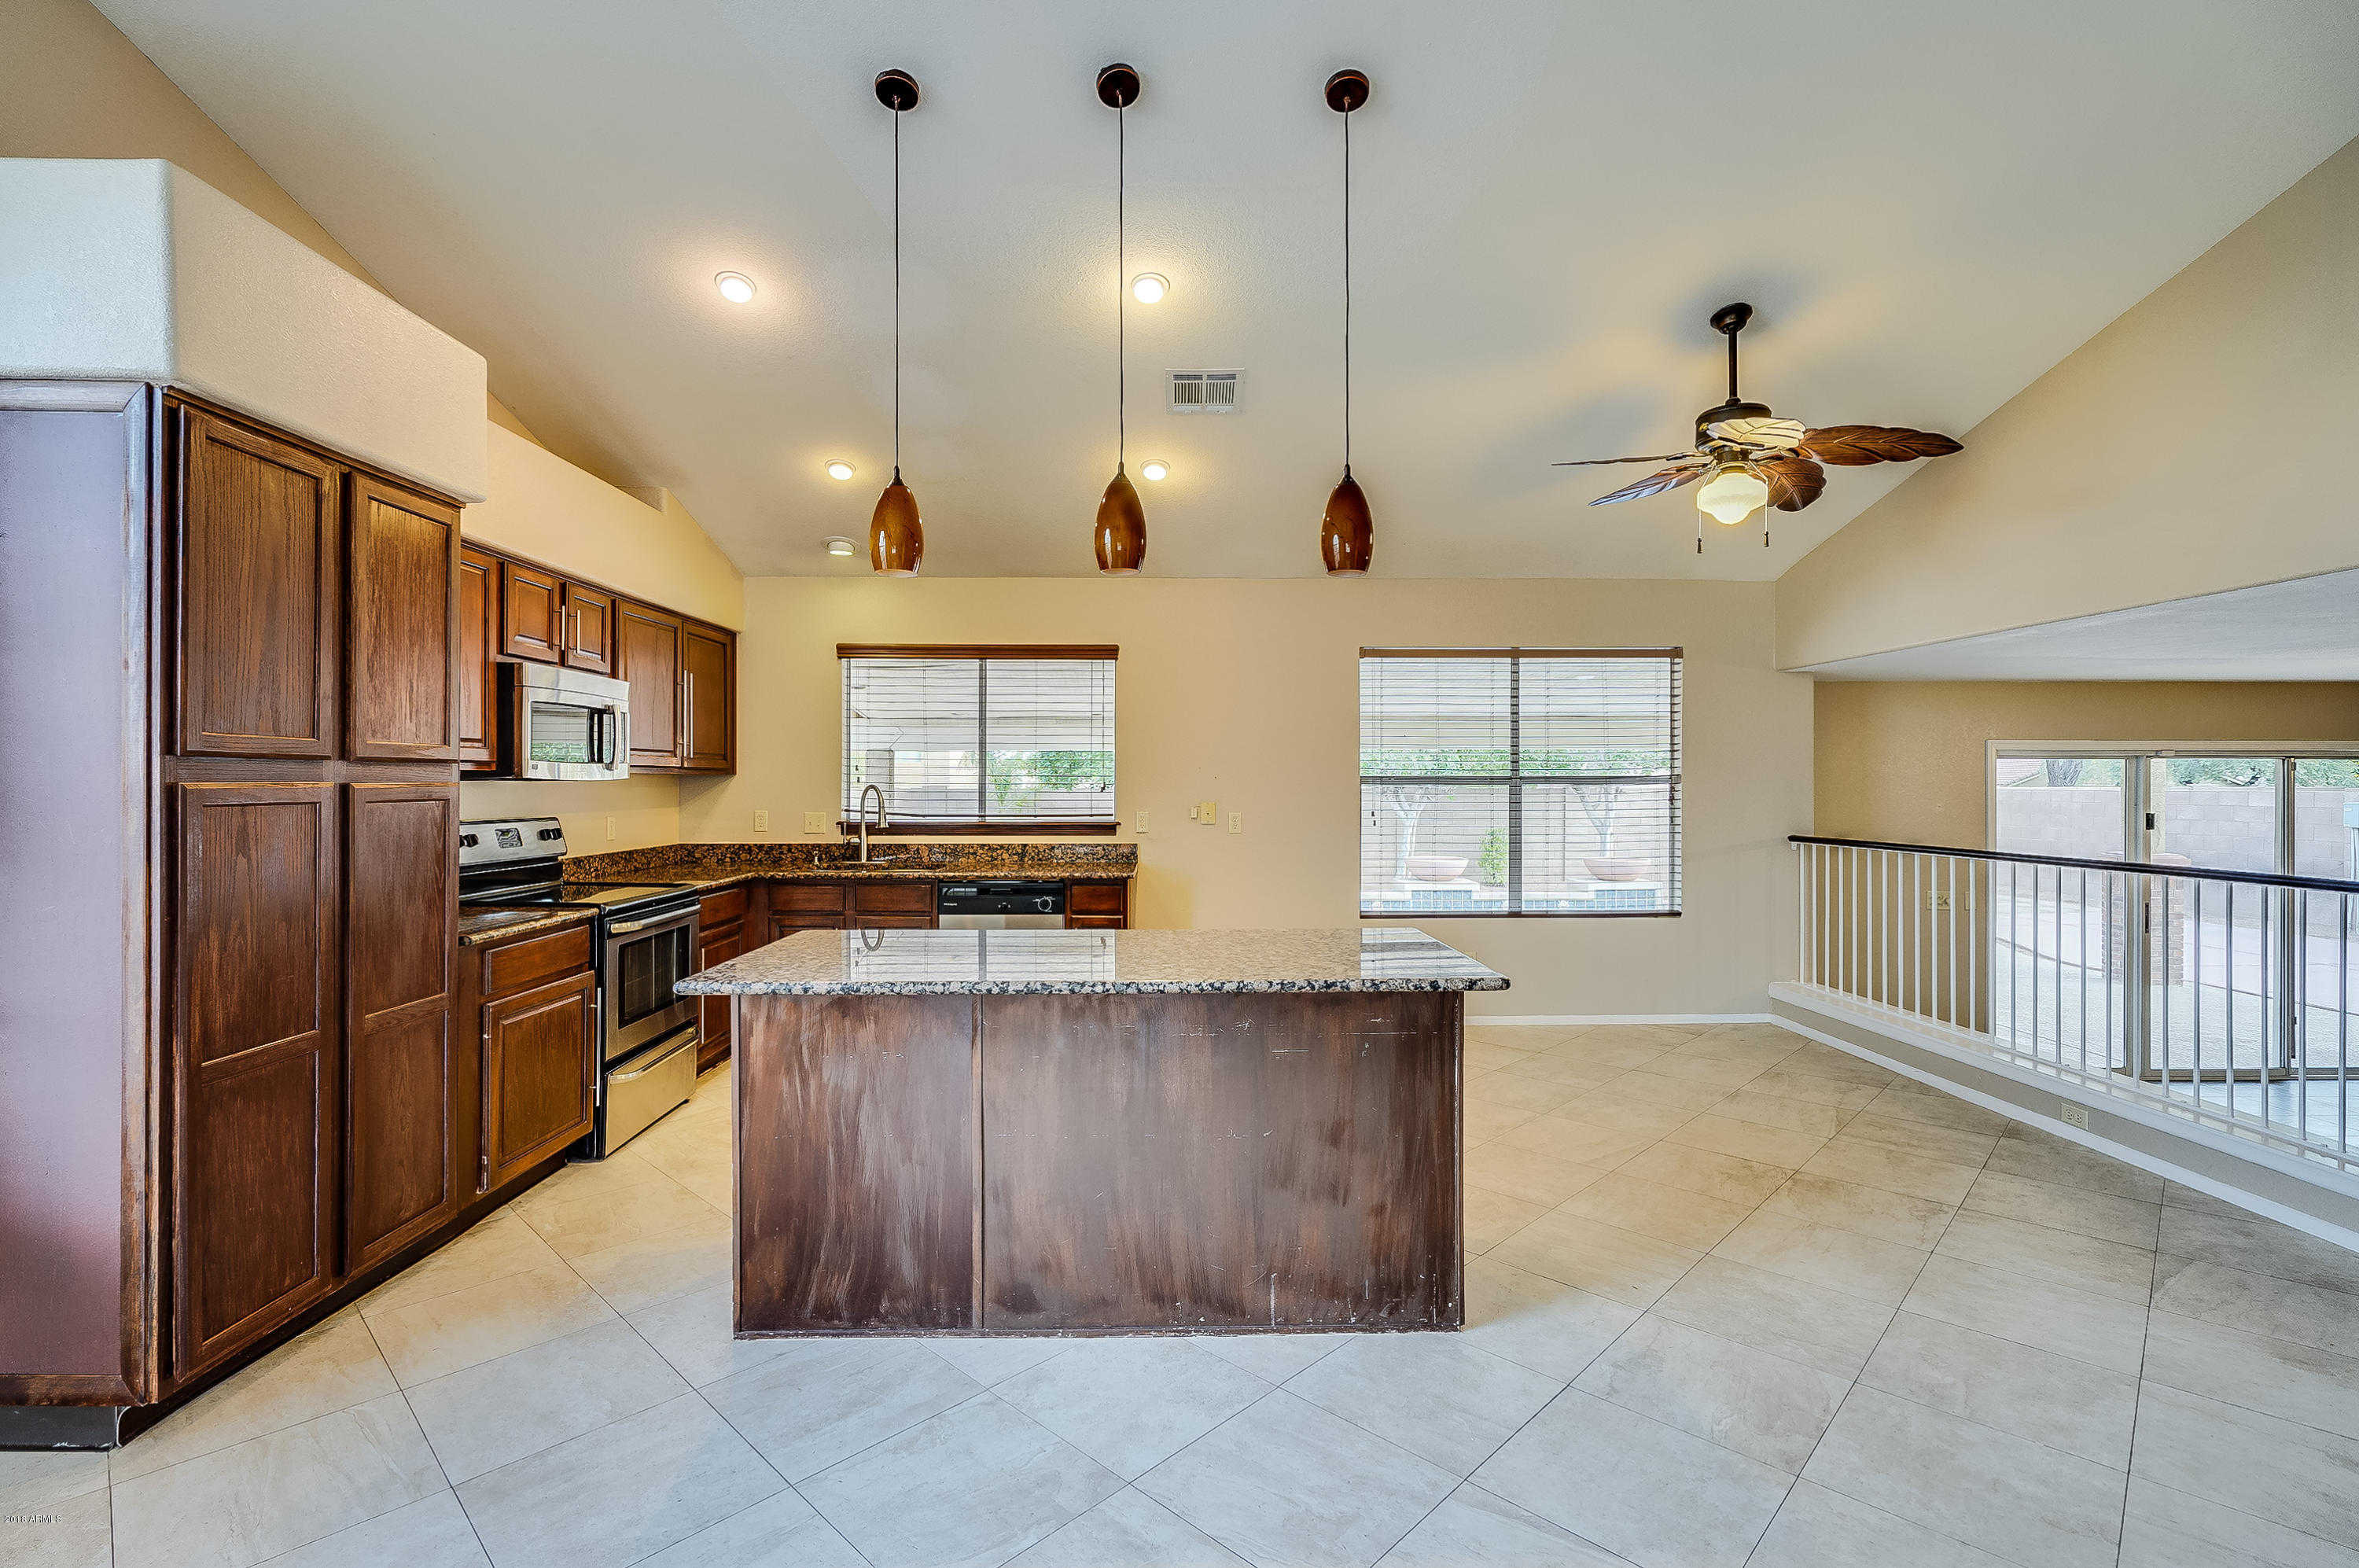 $308,000 - 3Br/3Ba - Home for Sale in Daybreak At North Canyon, Glendale